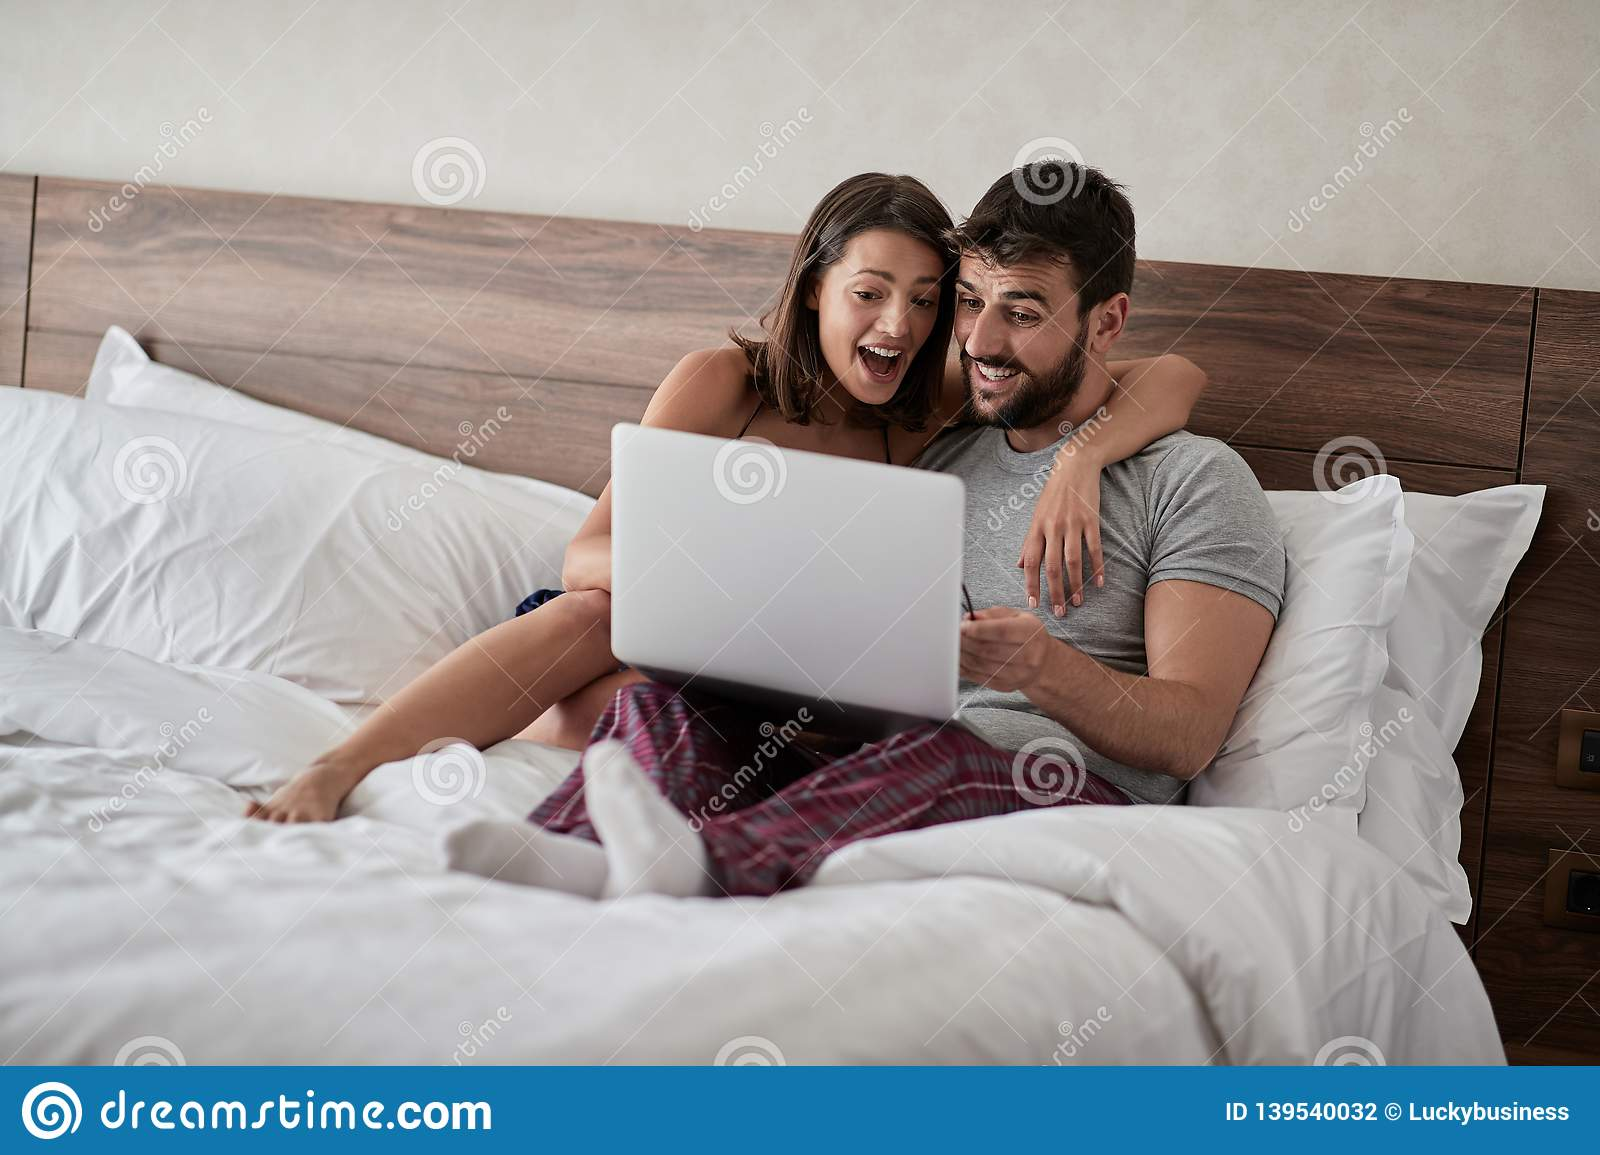 couple in bed video